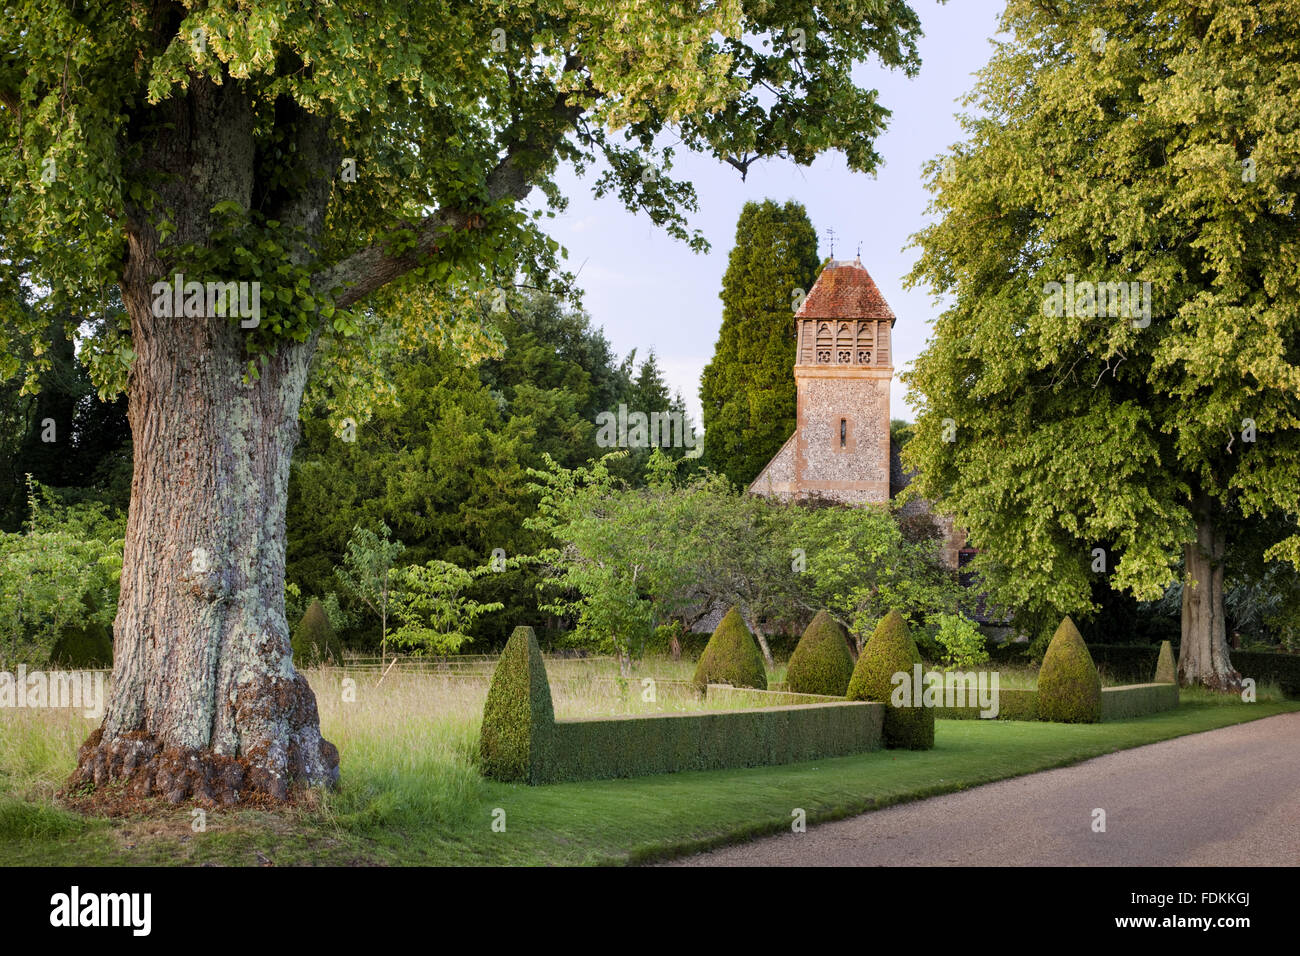 All Saints church (Not National Trust) at Hinton Ampner, Hampshire. - Stock Image